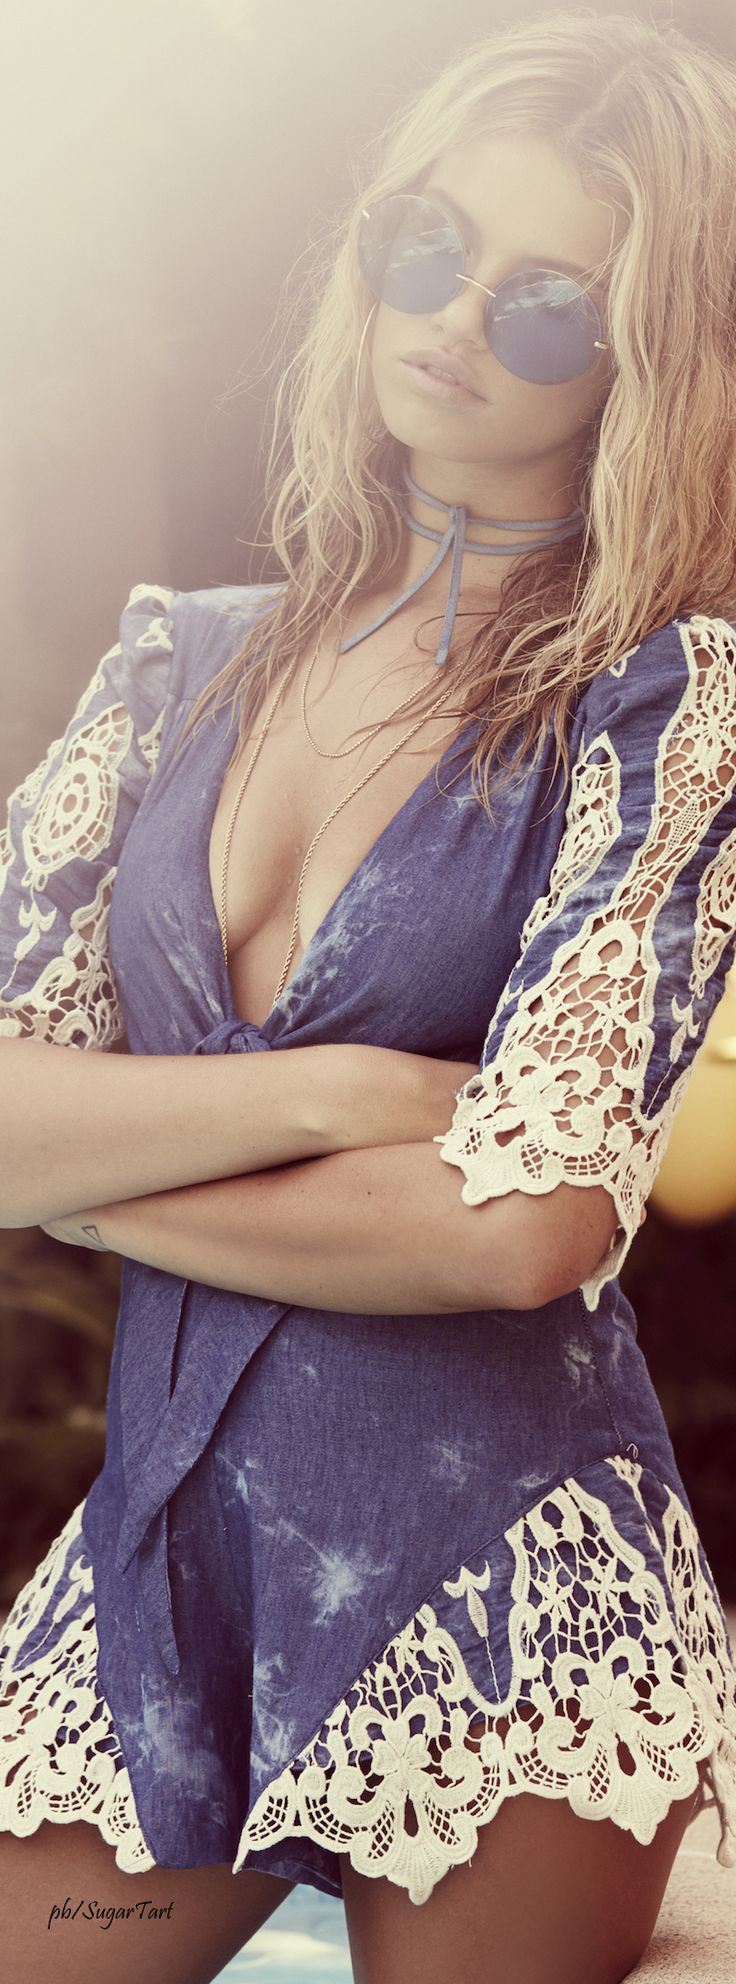 Blue Denim And Lace Romper  ≫∙∙☮ Bohème Babe ☮∙∙≪• ❤️ Babz™ ✿ιиѕριяαтισи❀ #abbigliamento #bohojewelry #boho